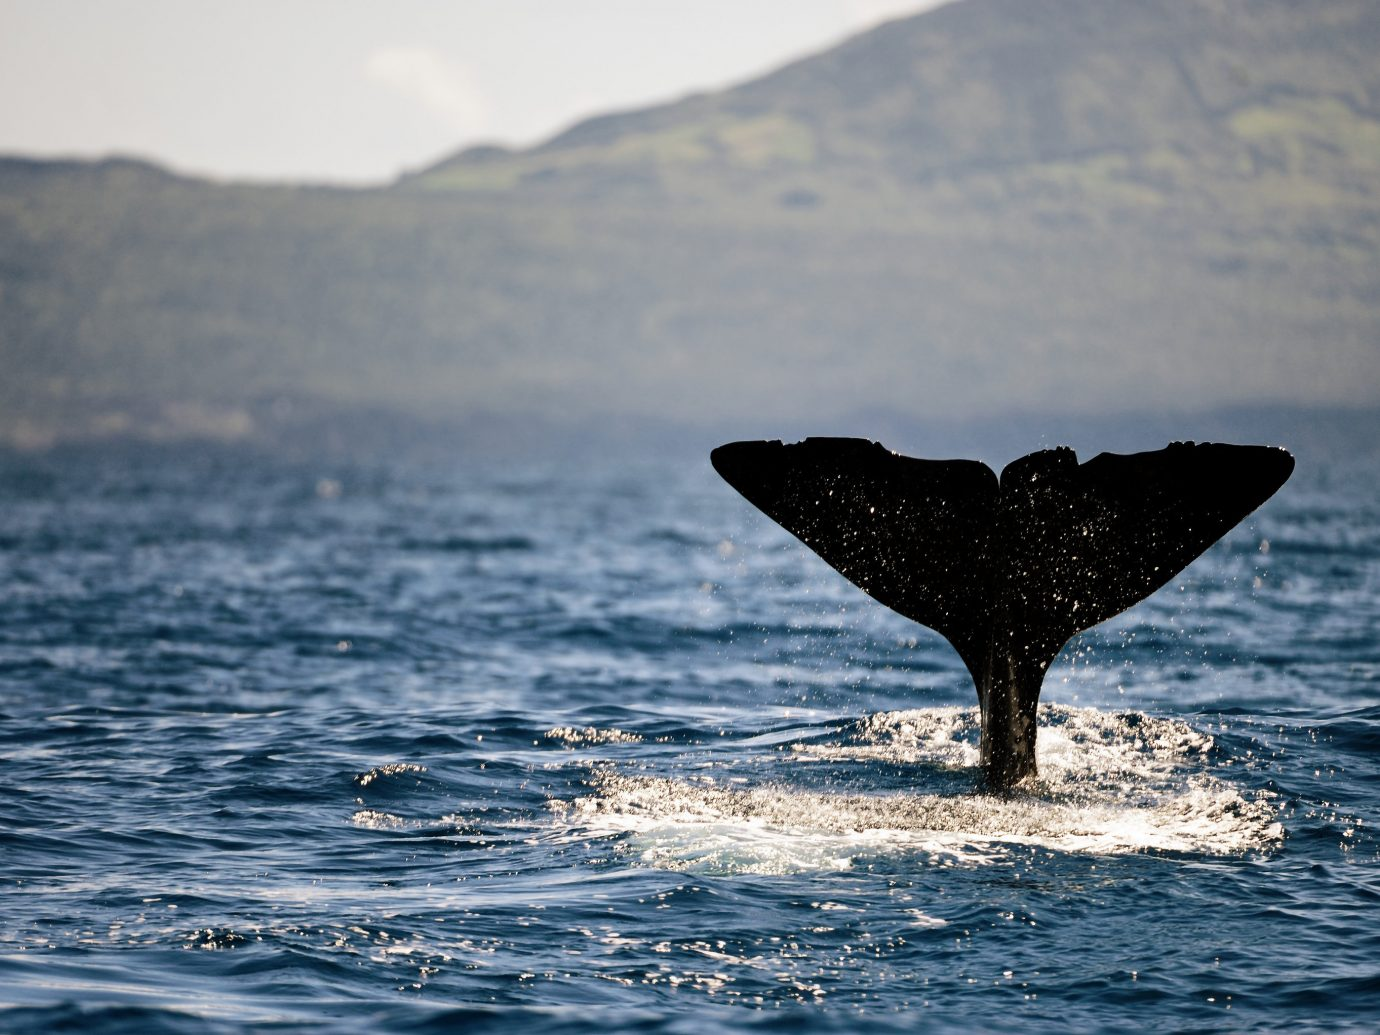 Portugal Trip Ideas water Sea marine mammal Ocean whales dolphins and porpoises whale sky Wildlife wave calm